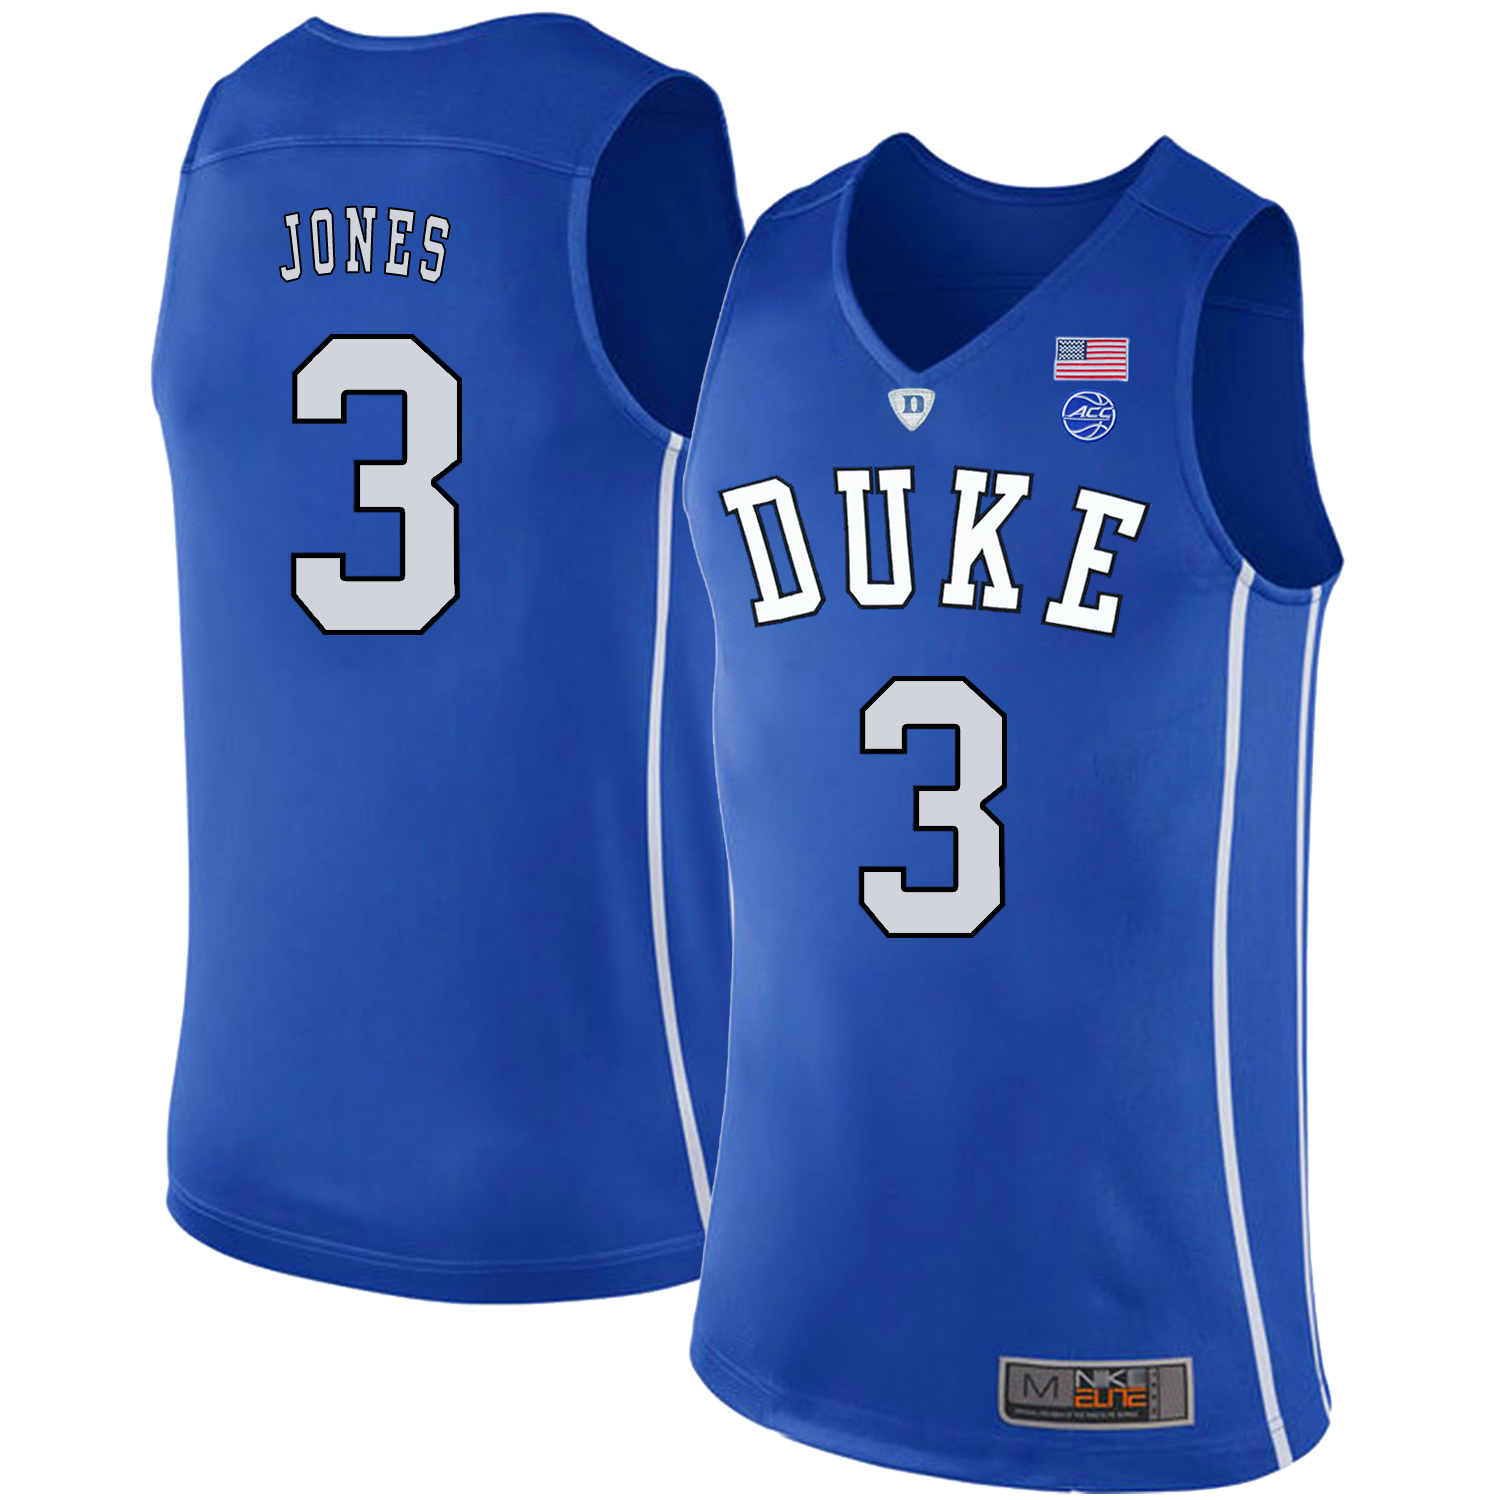 Majestic Athletic Men's Duke Blue Devils #3 Tre Jones Black College Basketball Jersey